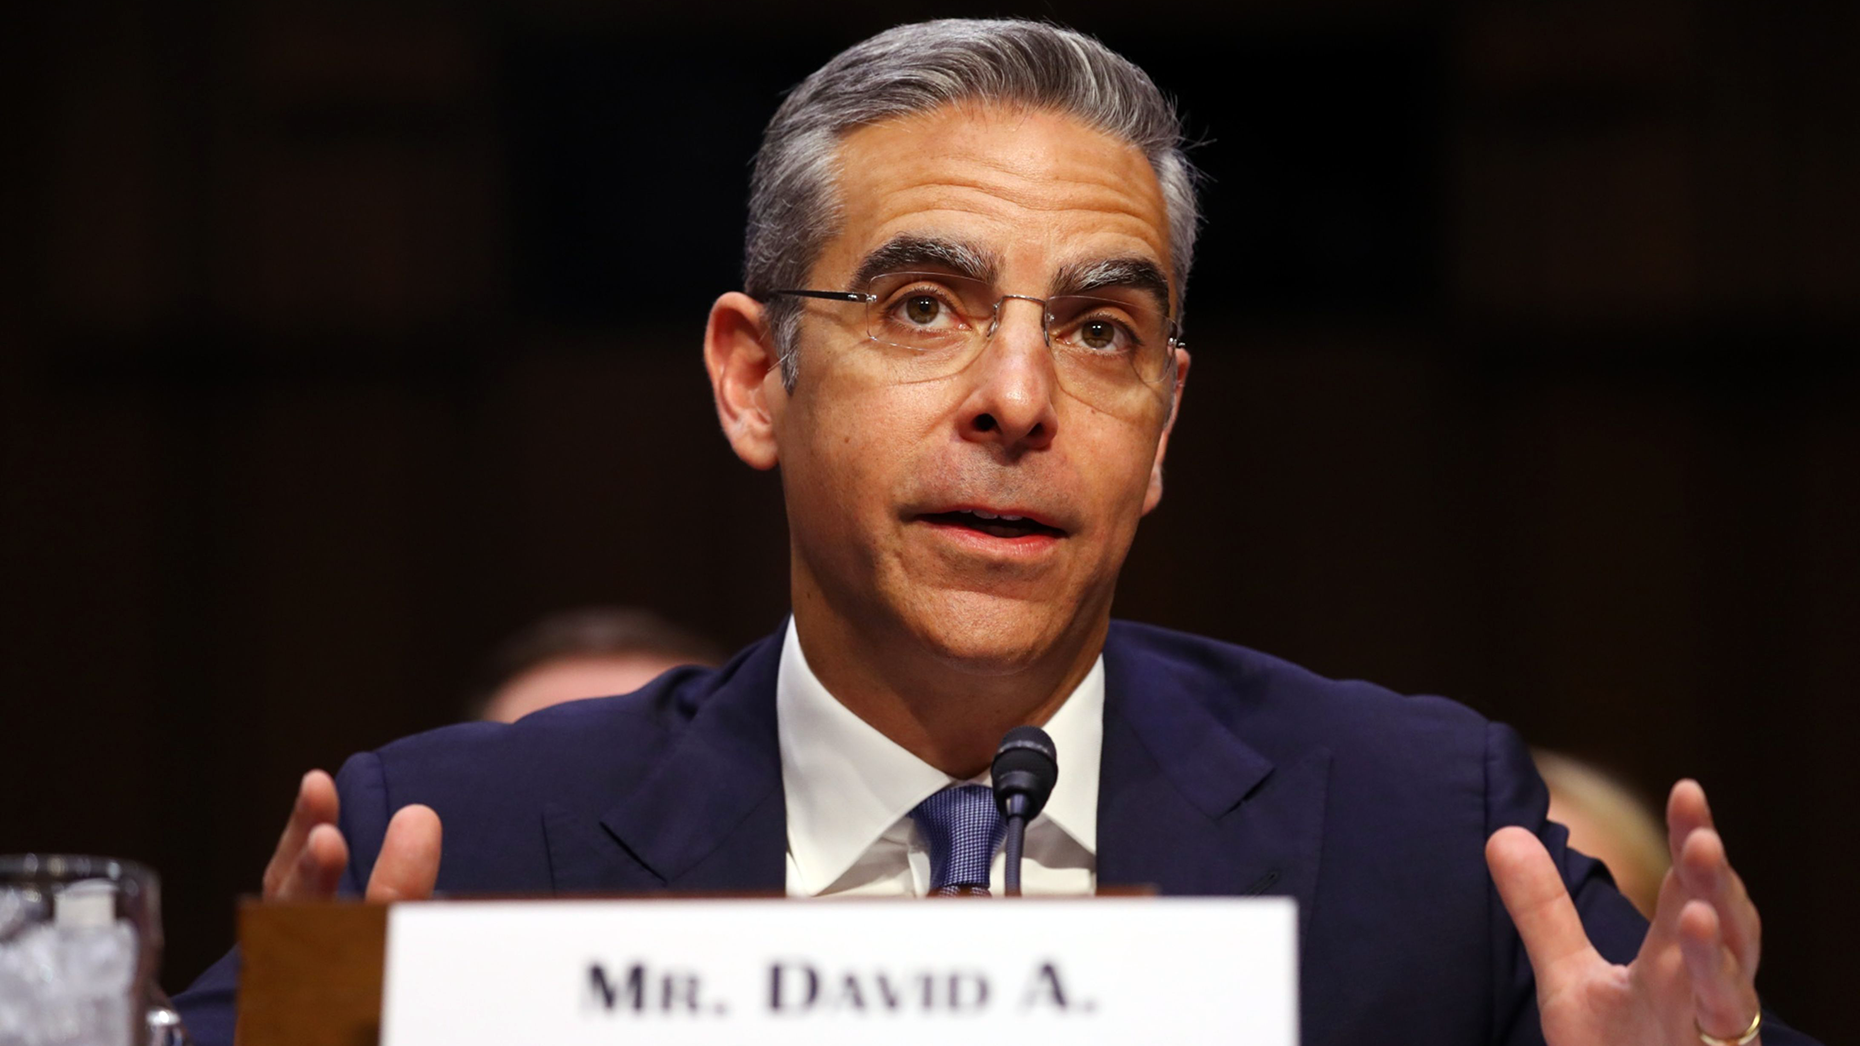 David Marcus, head of blockchain for Facebook. Photo by Bloomberg